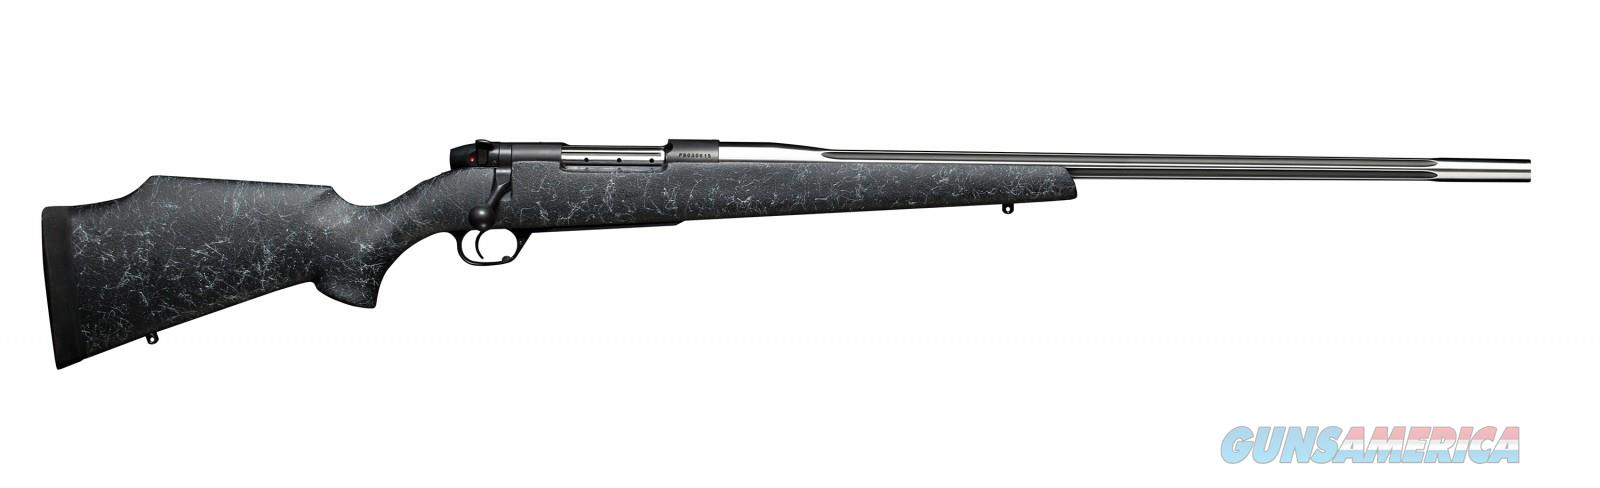 "Weatherby Mark V Accumark 30.06  24""  Guns > Rifles > Weatherby Rifles > Sporting"